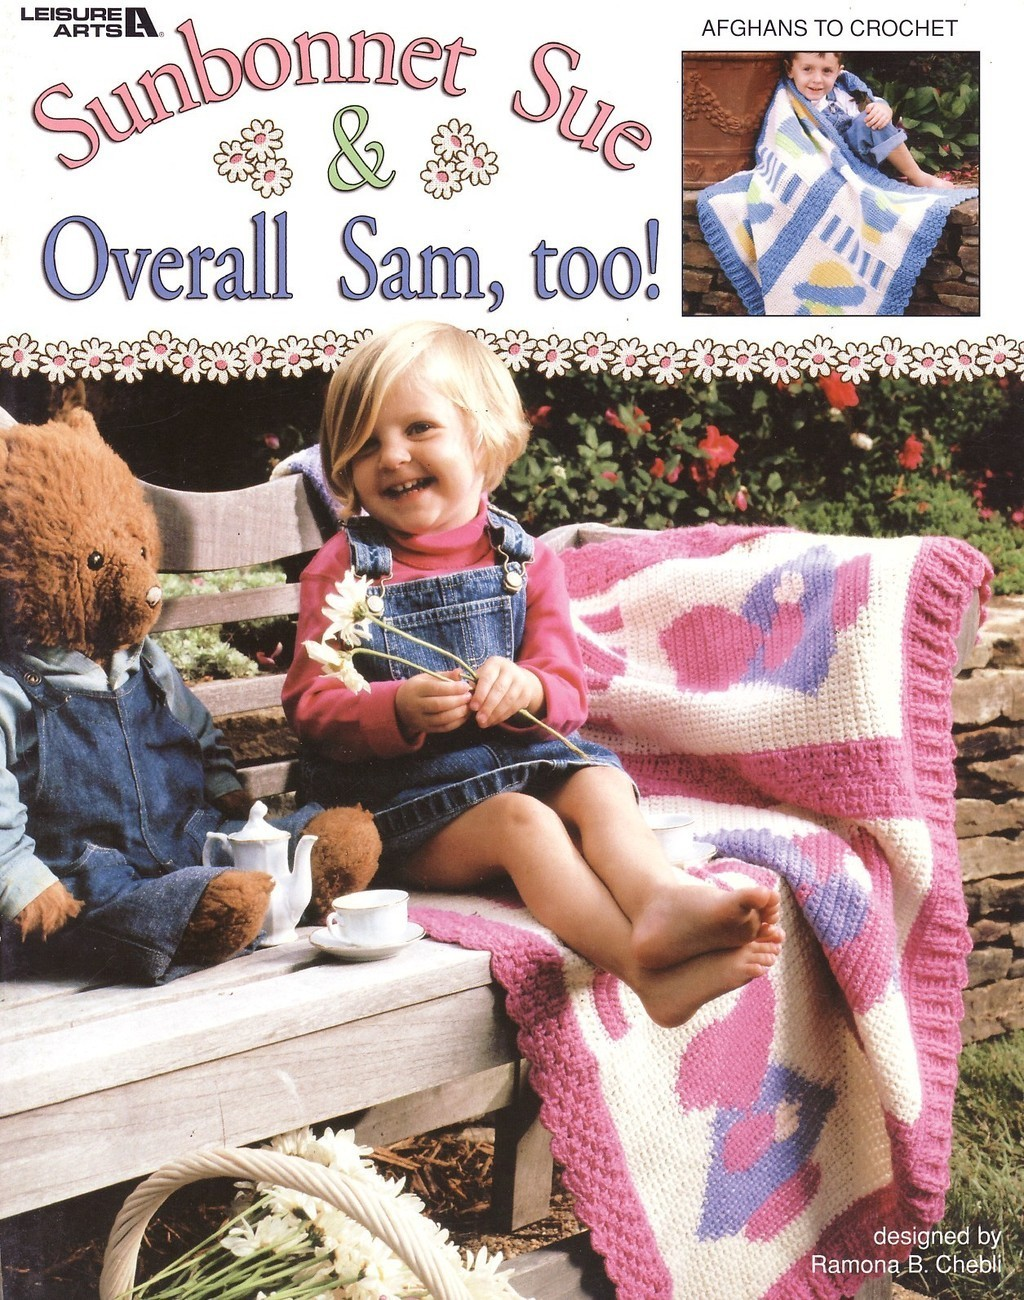 Sunbonnet Sue & Overall Sam Too Afghan Crochet Patterns Book